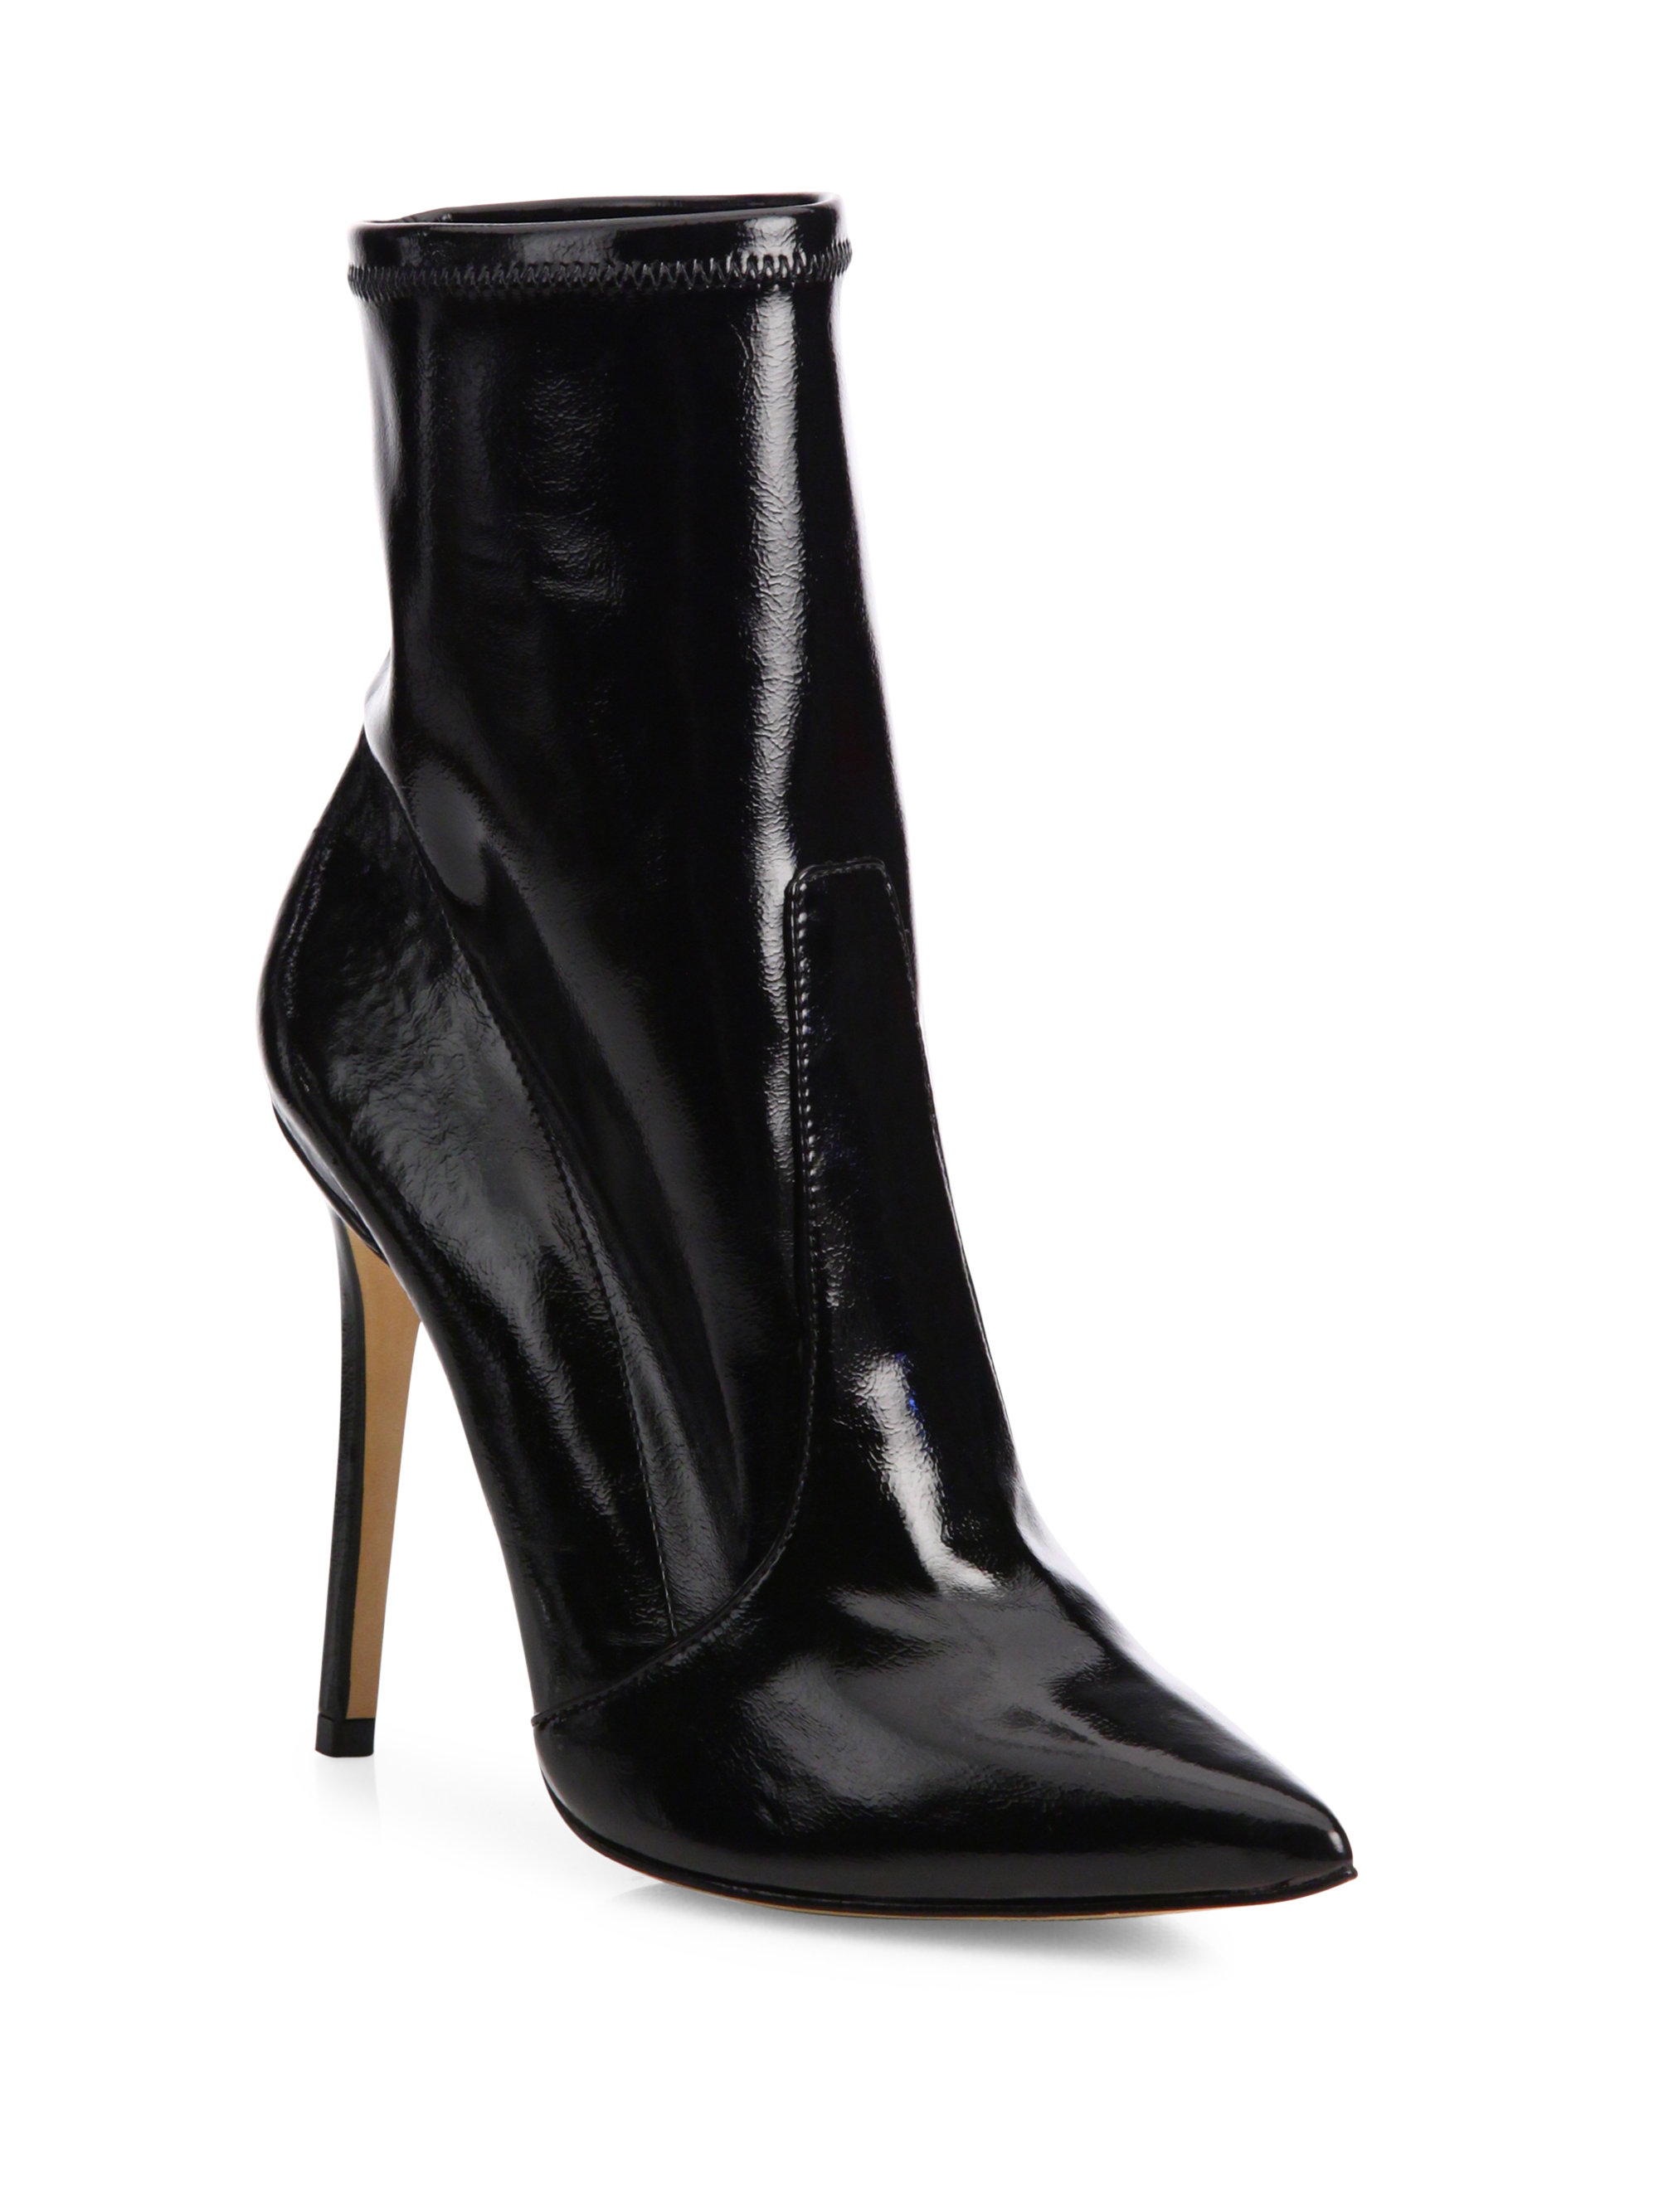 Schutz Brunny Patent Leather Point Toe Booties In Black Lyst